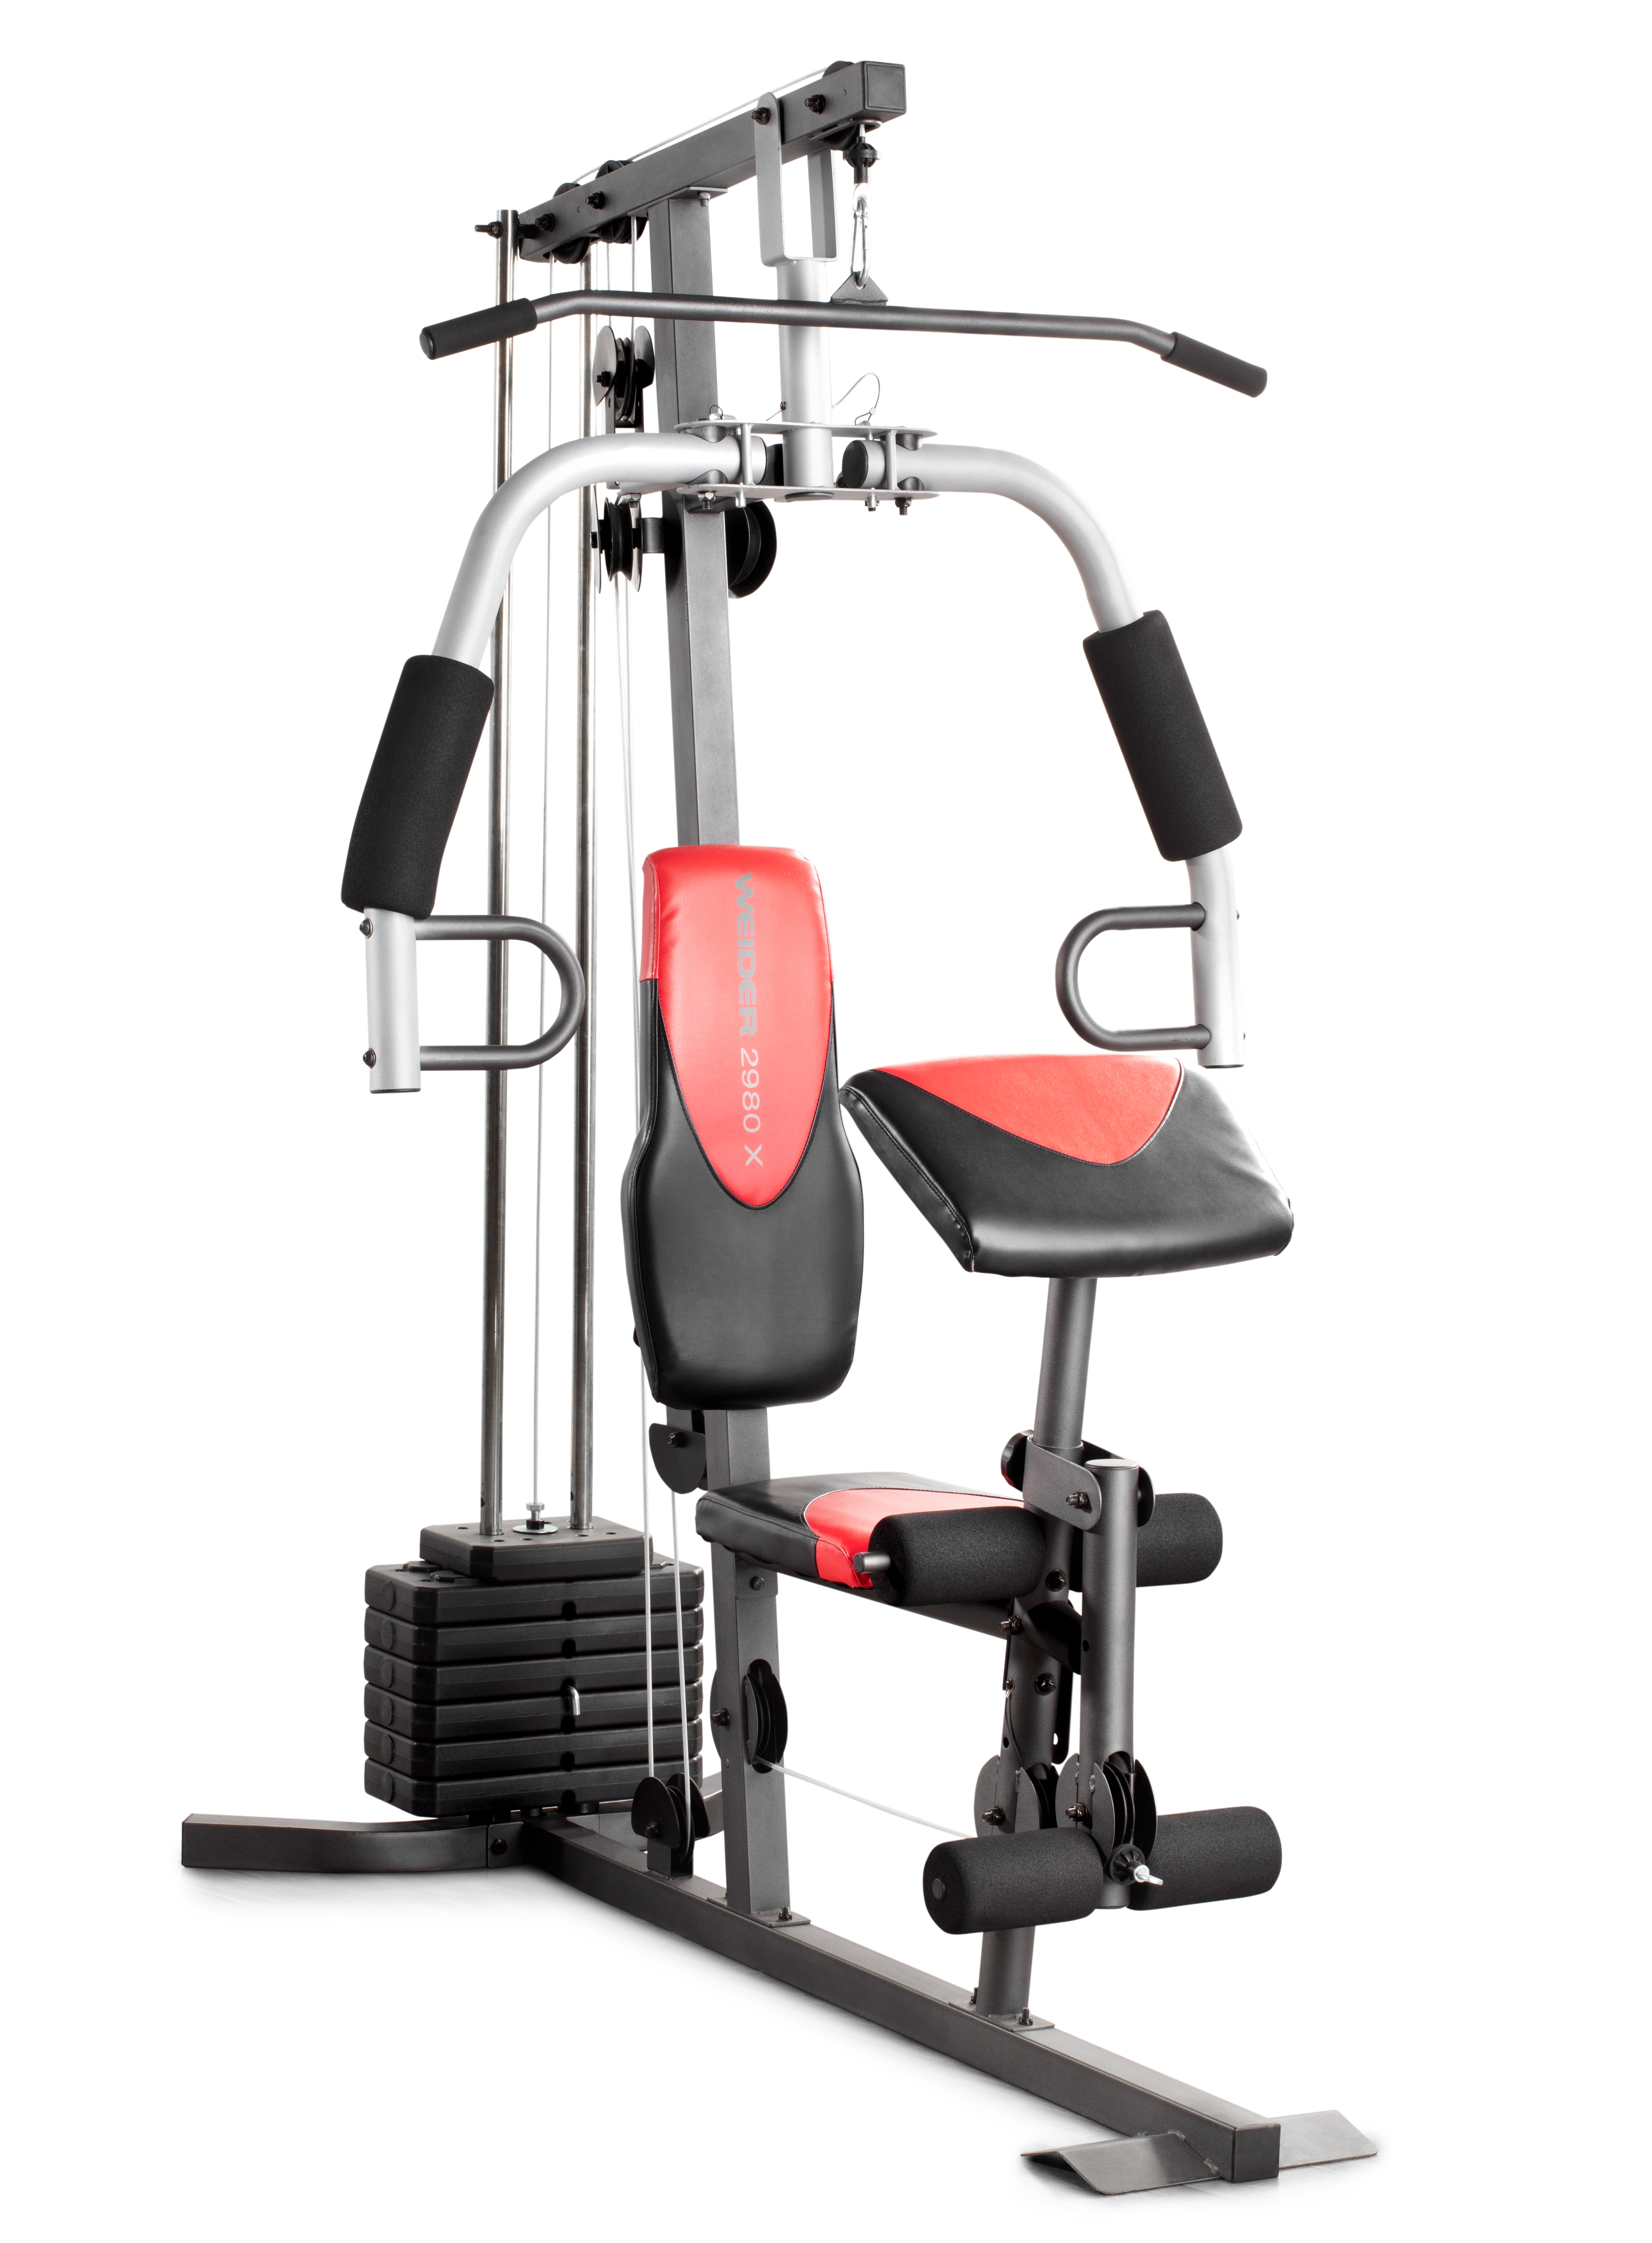 resistance chair exercise system reviews plush padded moon saucer in red weider 2980 home gym with 214 lbs of walmart com